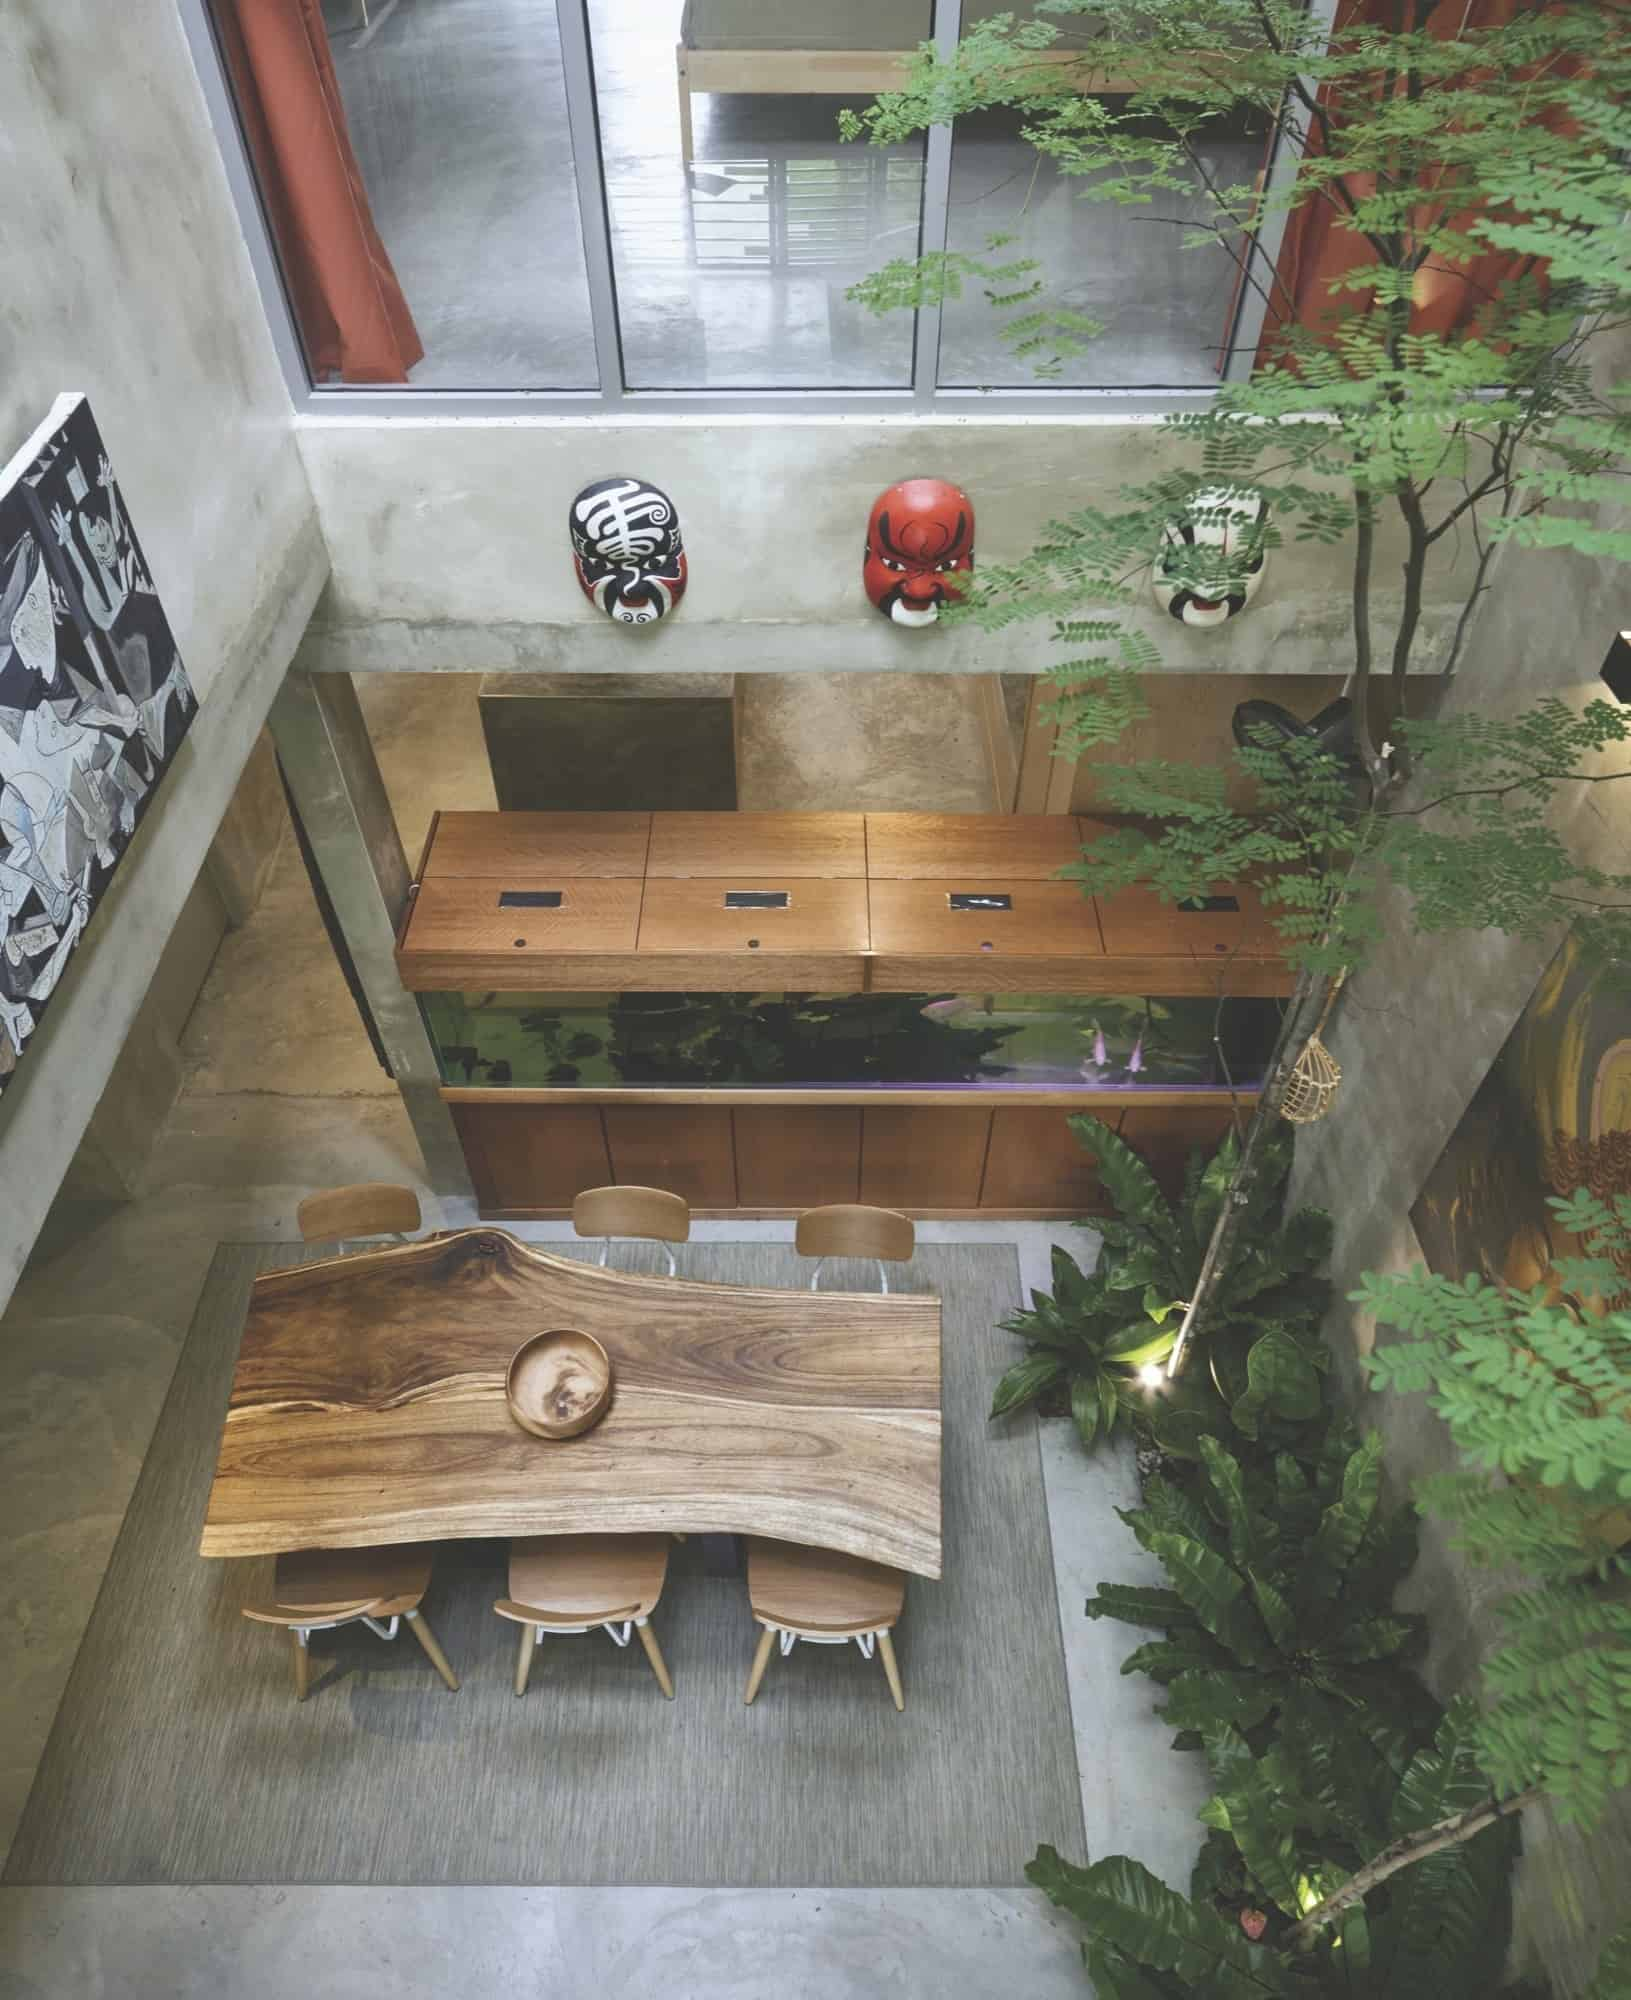 Arbre D Intérieur Salon Trees And Shrubs Create Faux Courtyard Inside House